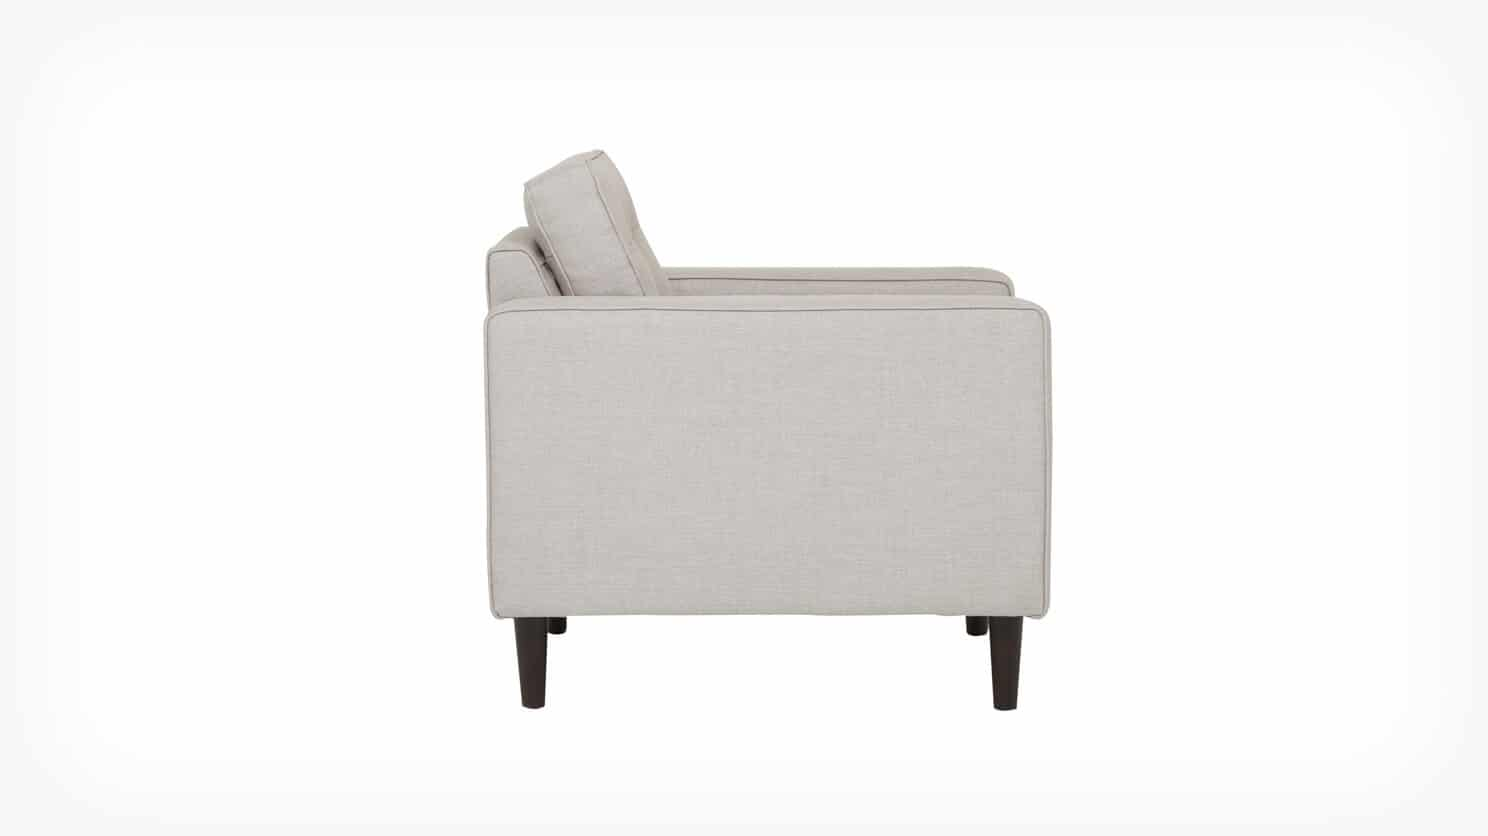 30095 02 2 chairs reverie chair polo grey side